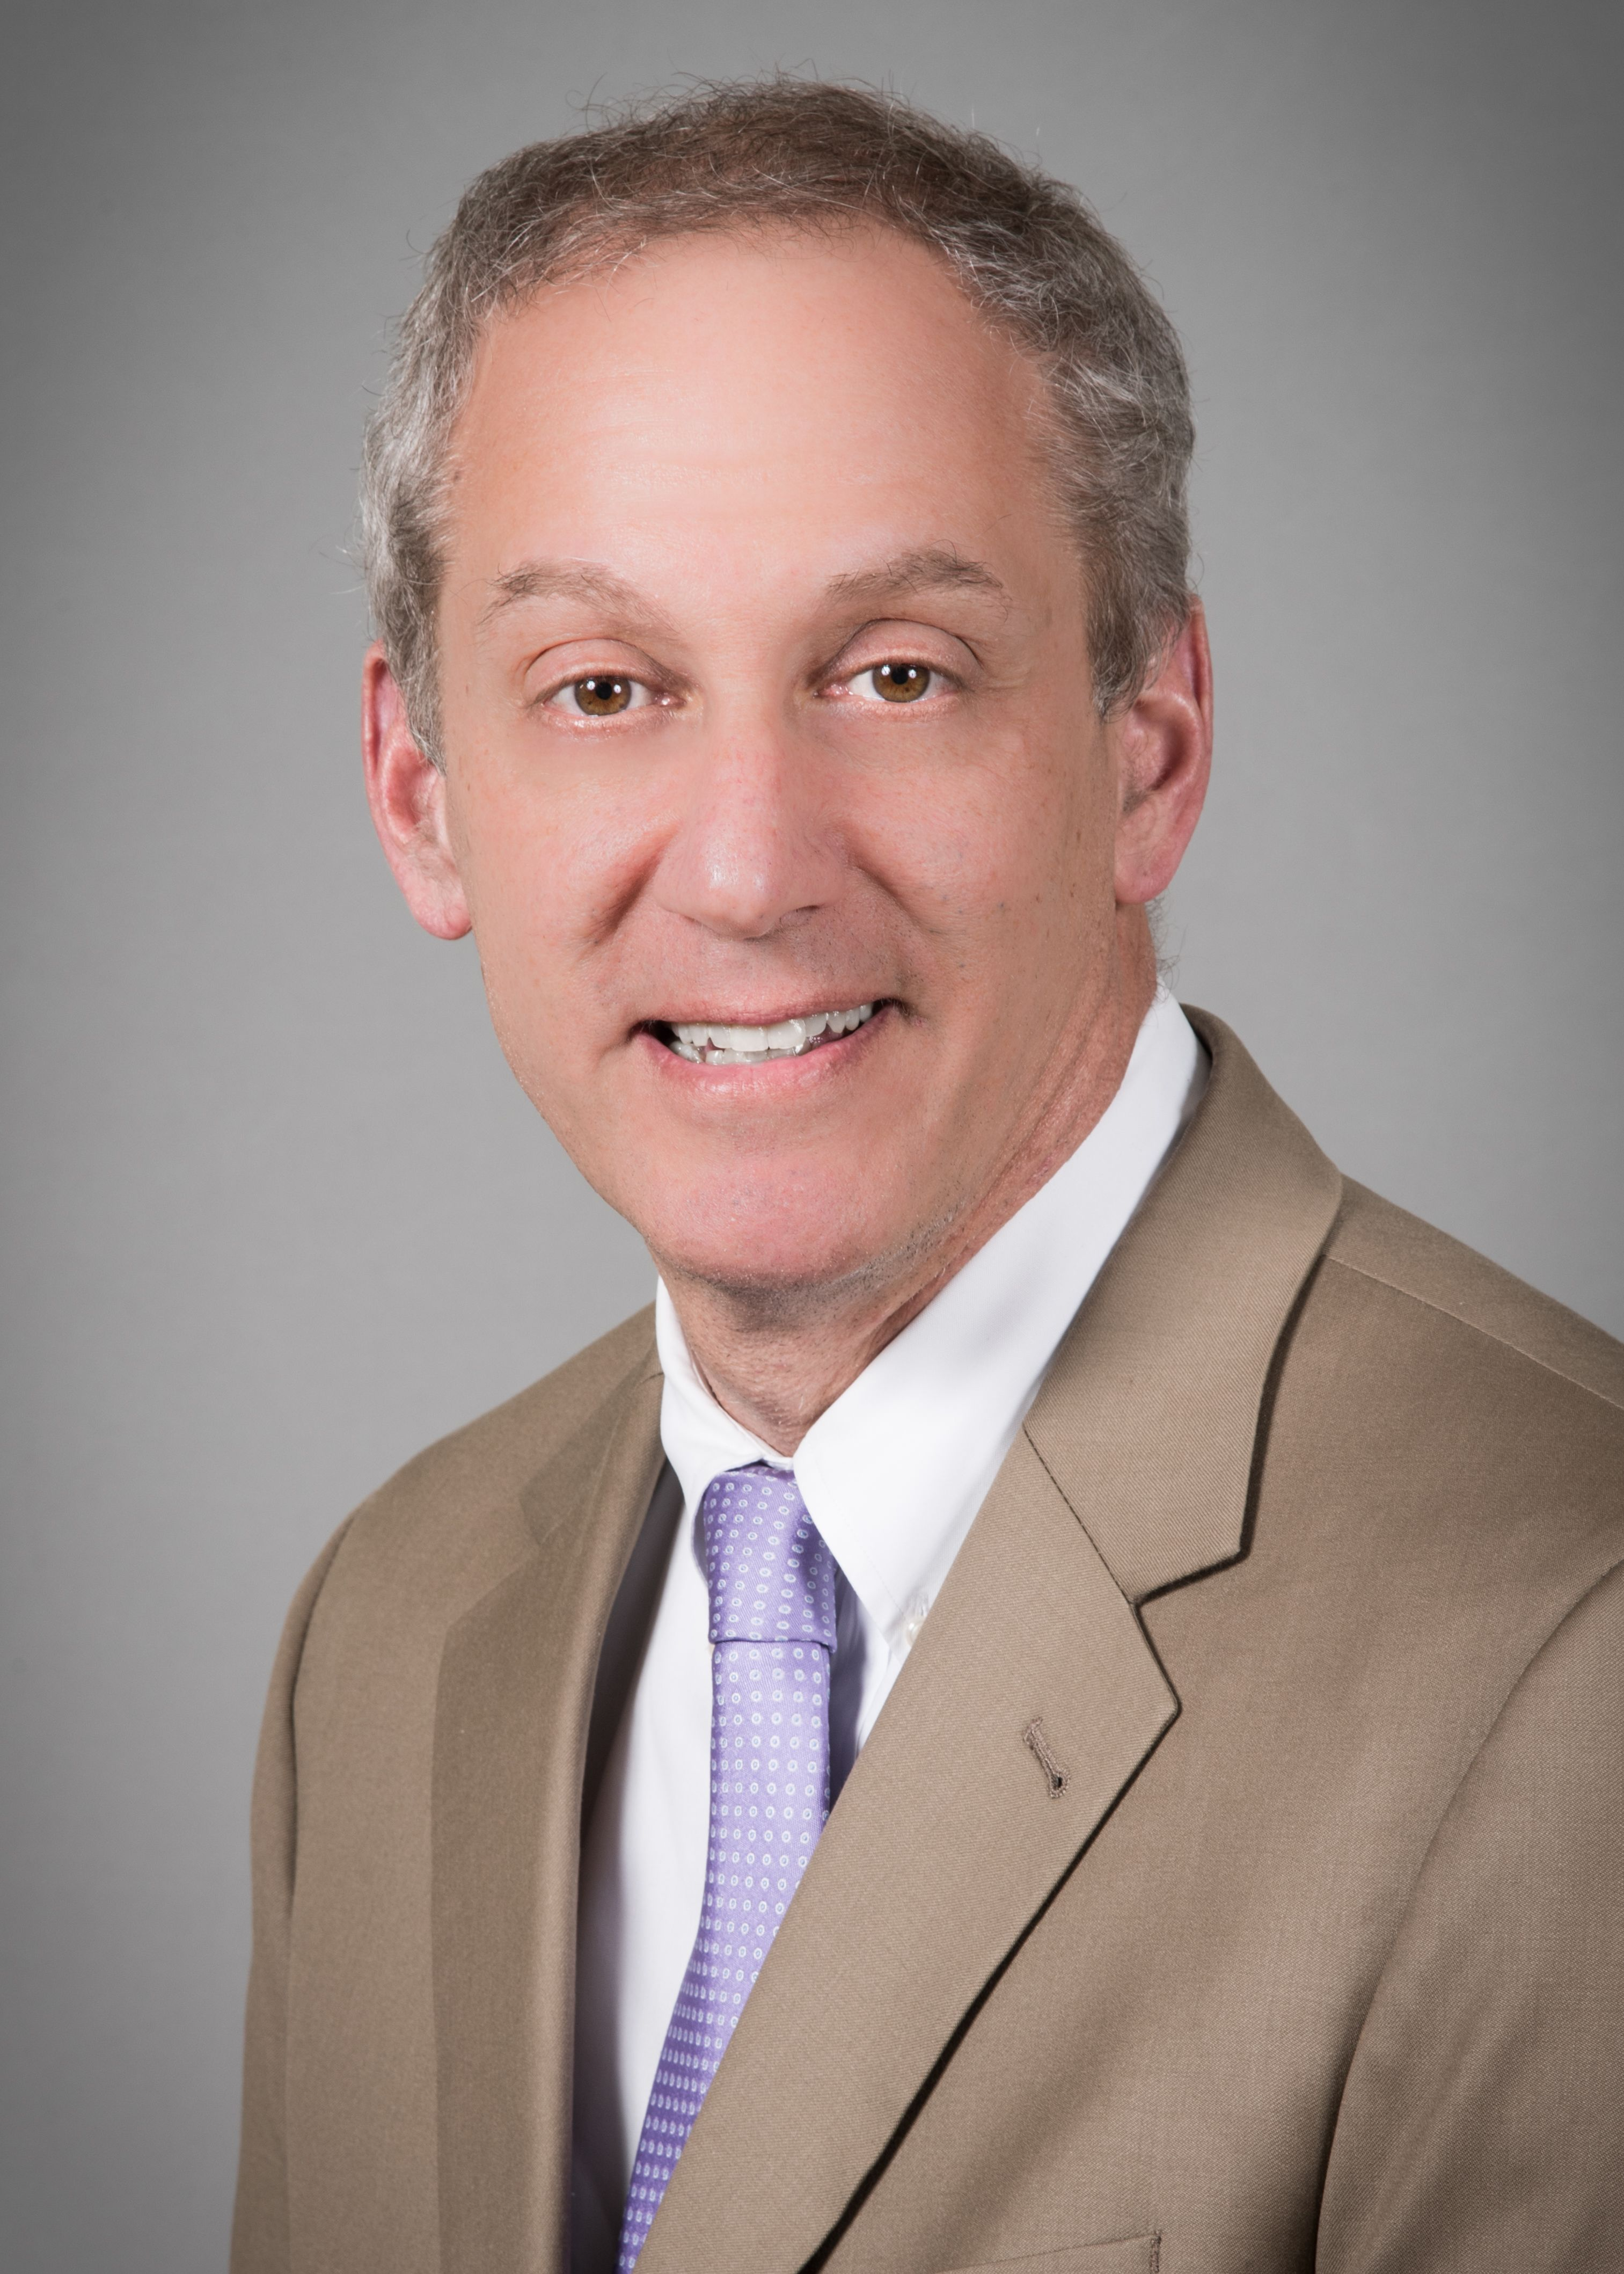 Peter Silver, MD, wearing a beige suit and purple tie